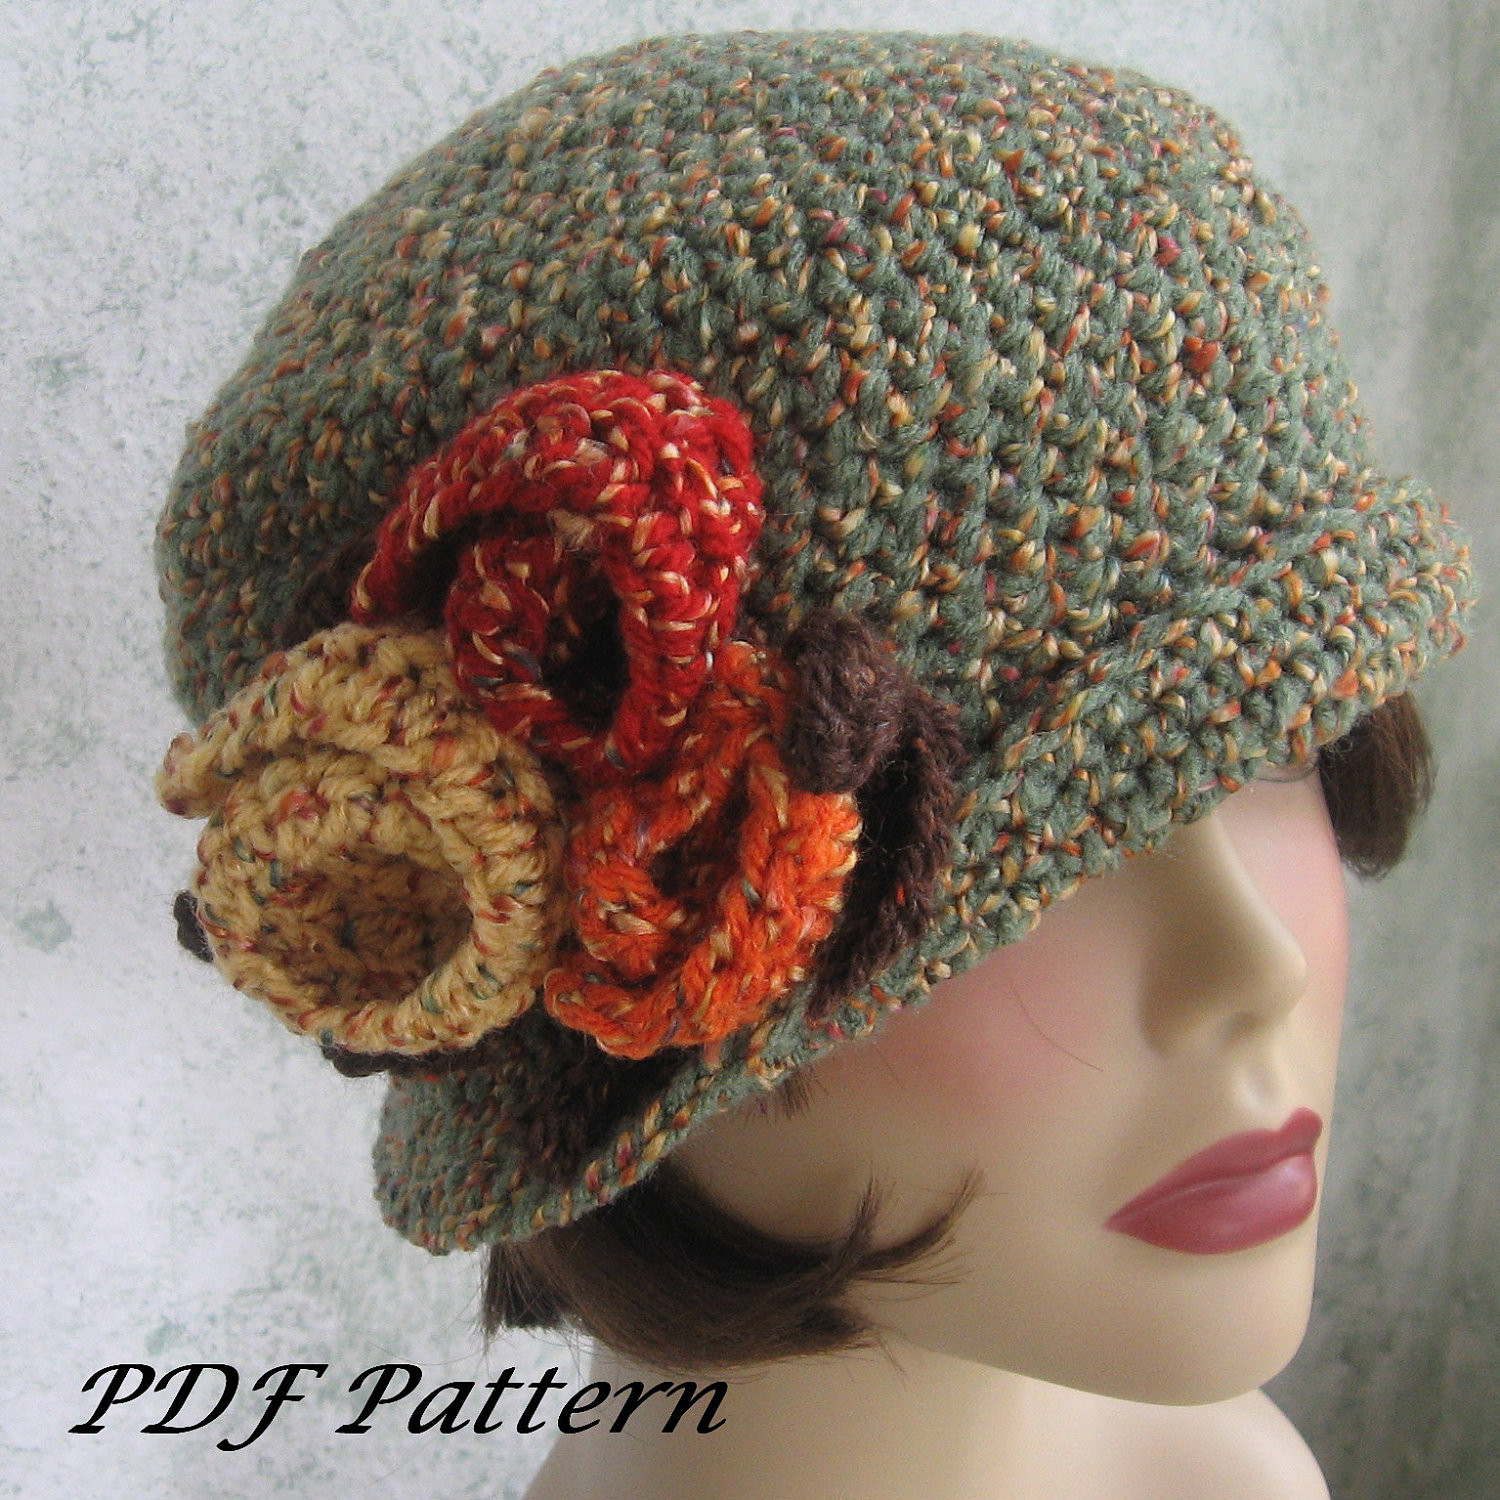 Inspirational Crochet Pattern Womens Flapper Hat Downton Abbey Style with Crochet Flowers for Hats Free Patterns Of Luxury 25 Best Ideas About Crochet Hats On Pinterest Crochet Flowers for Hats Free Patterns